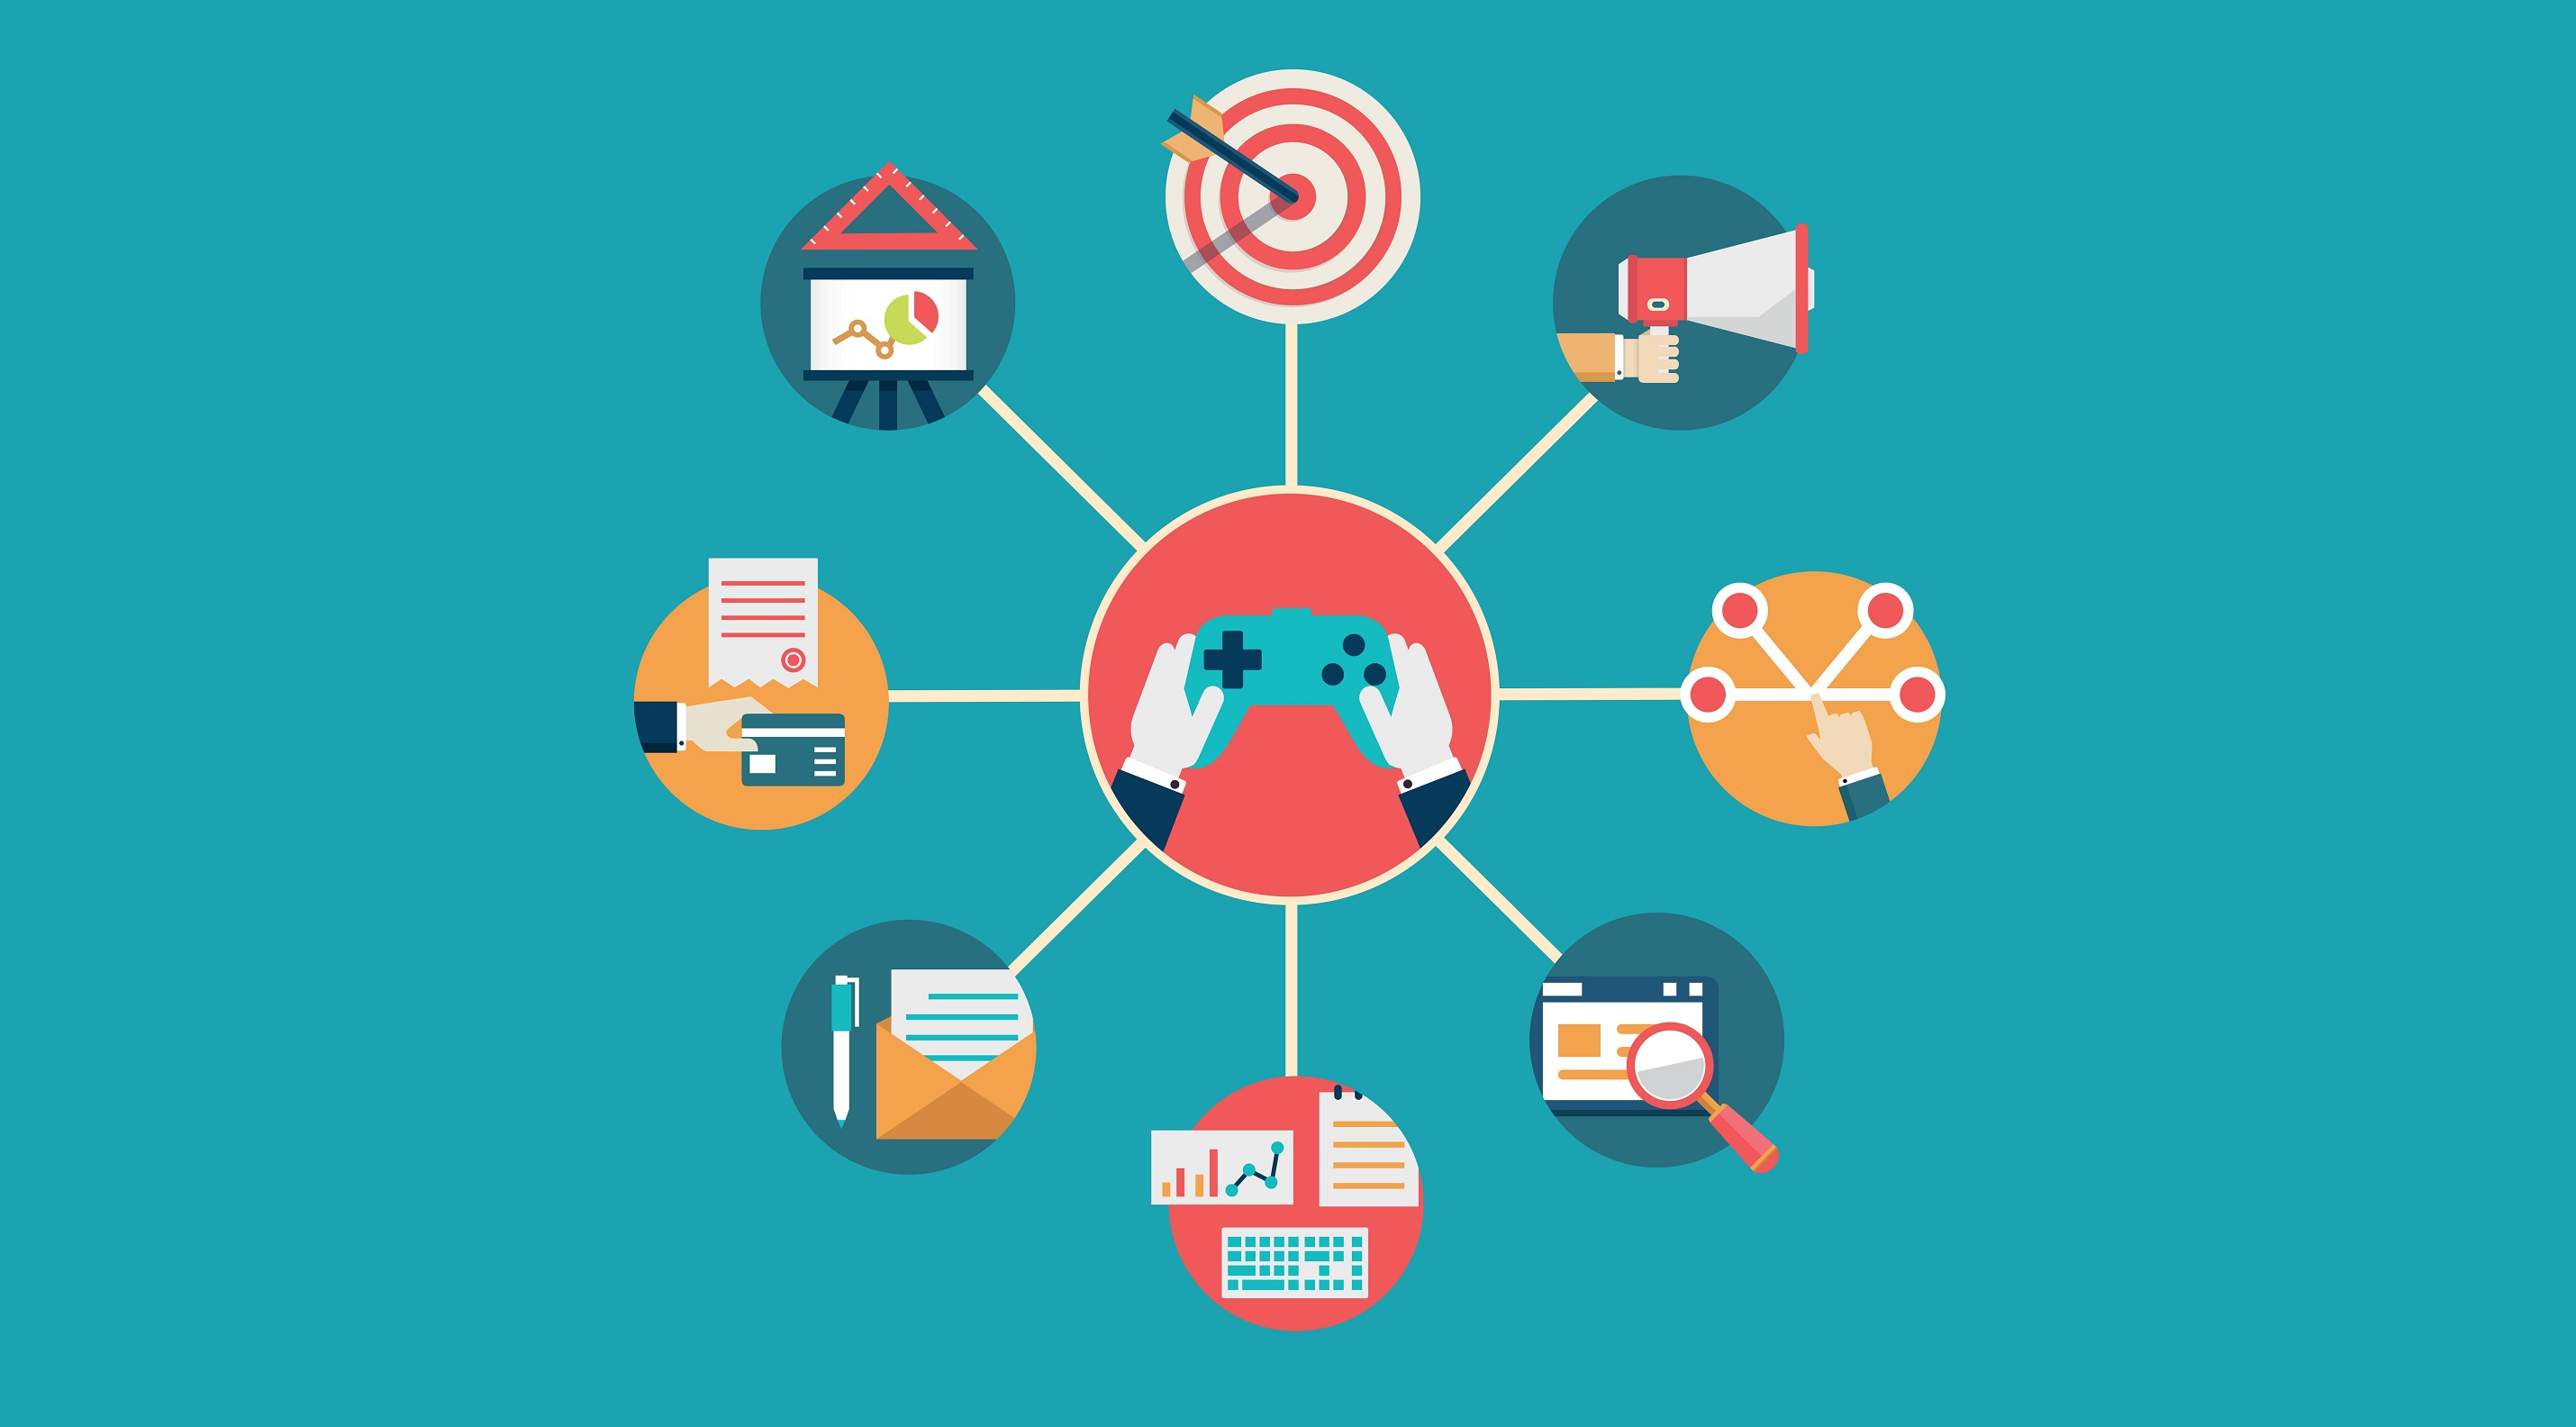 the concept of gamification of education and how educational based games aid in studying A gamified approach to teaching and learning competency-based habits of mind that higher education too often eschews the games encourage students.